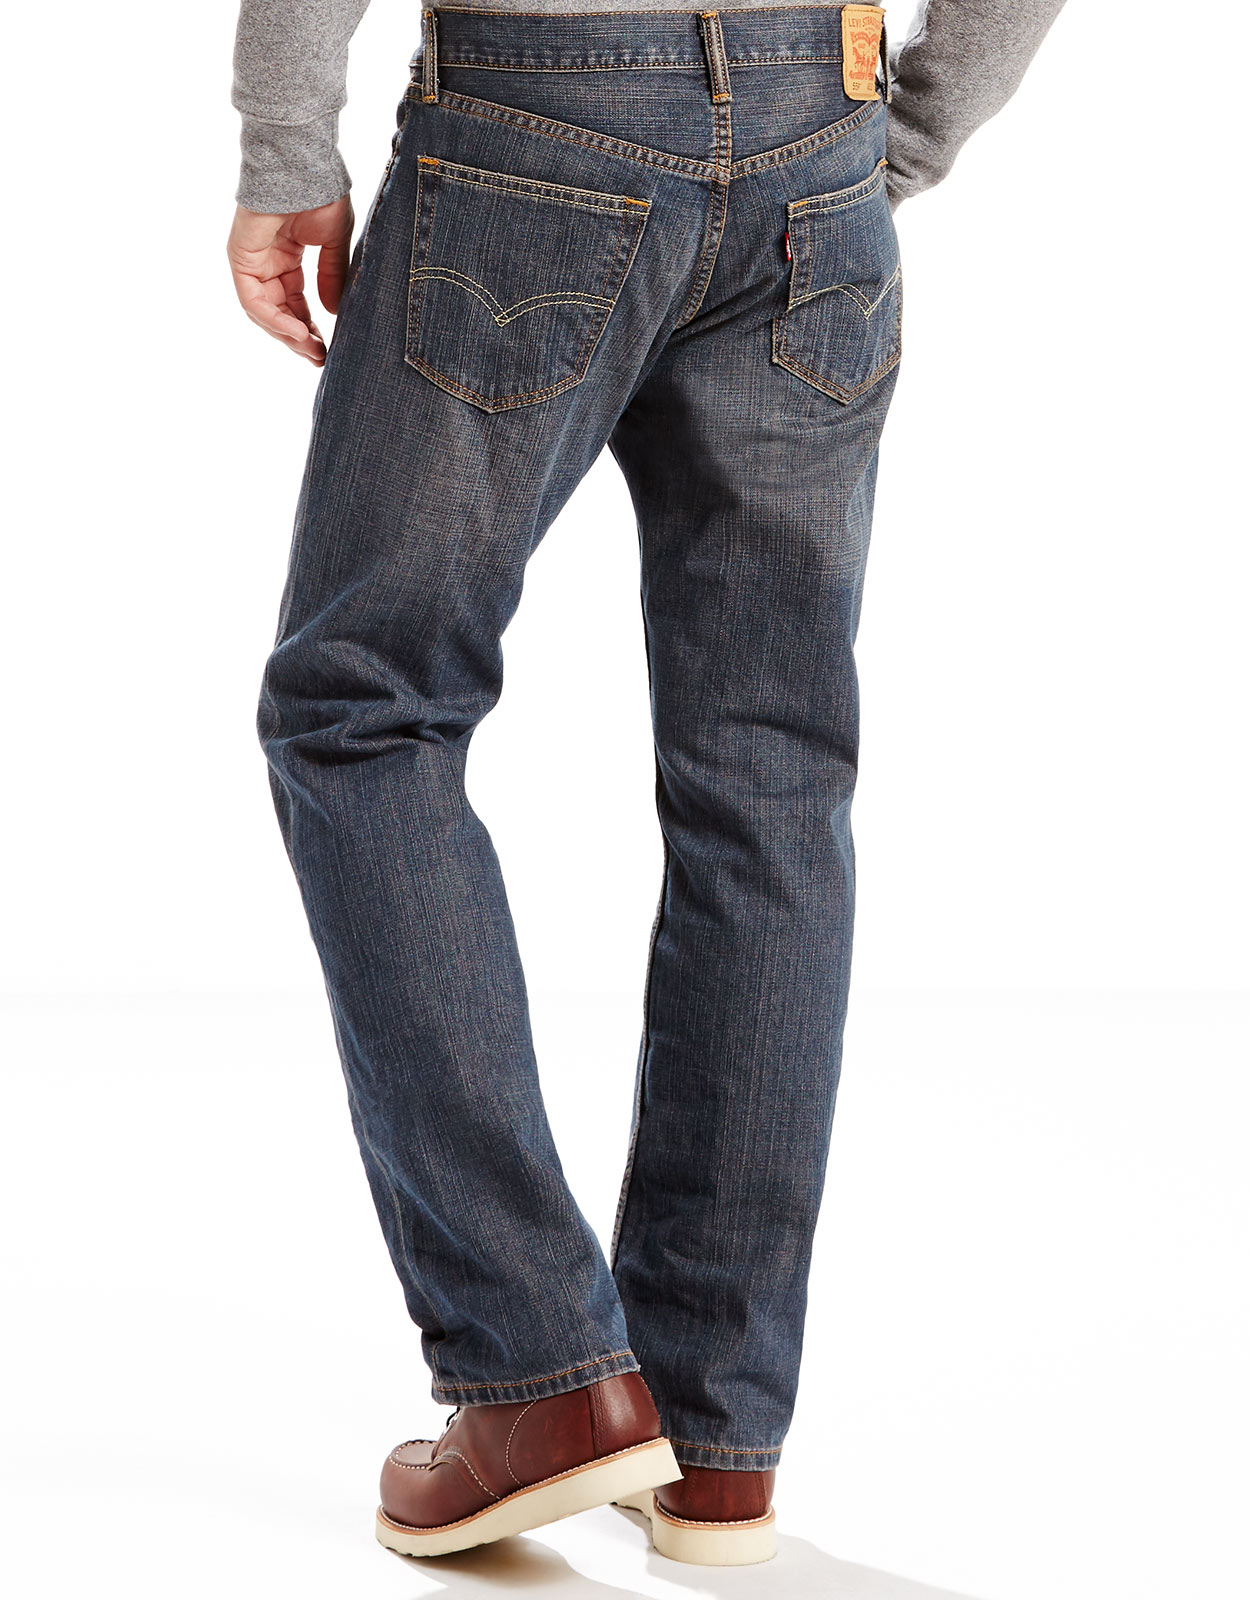 Levi's Men's 559 Relaxed Straight Low Rise Relaxed Fit Straight Leg Jeans - Range